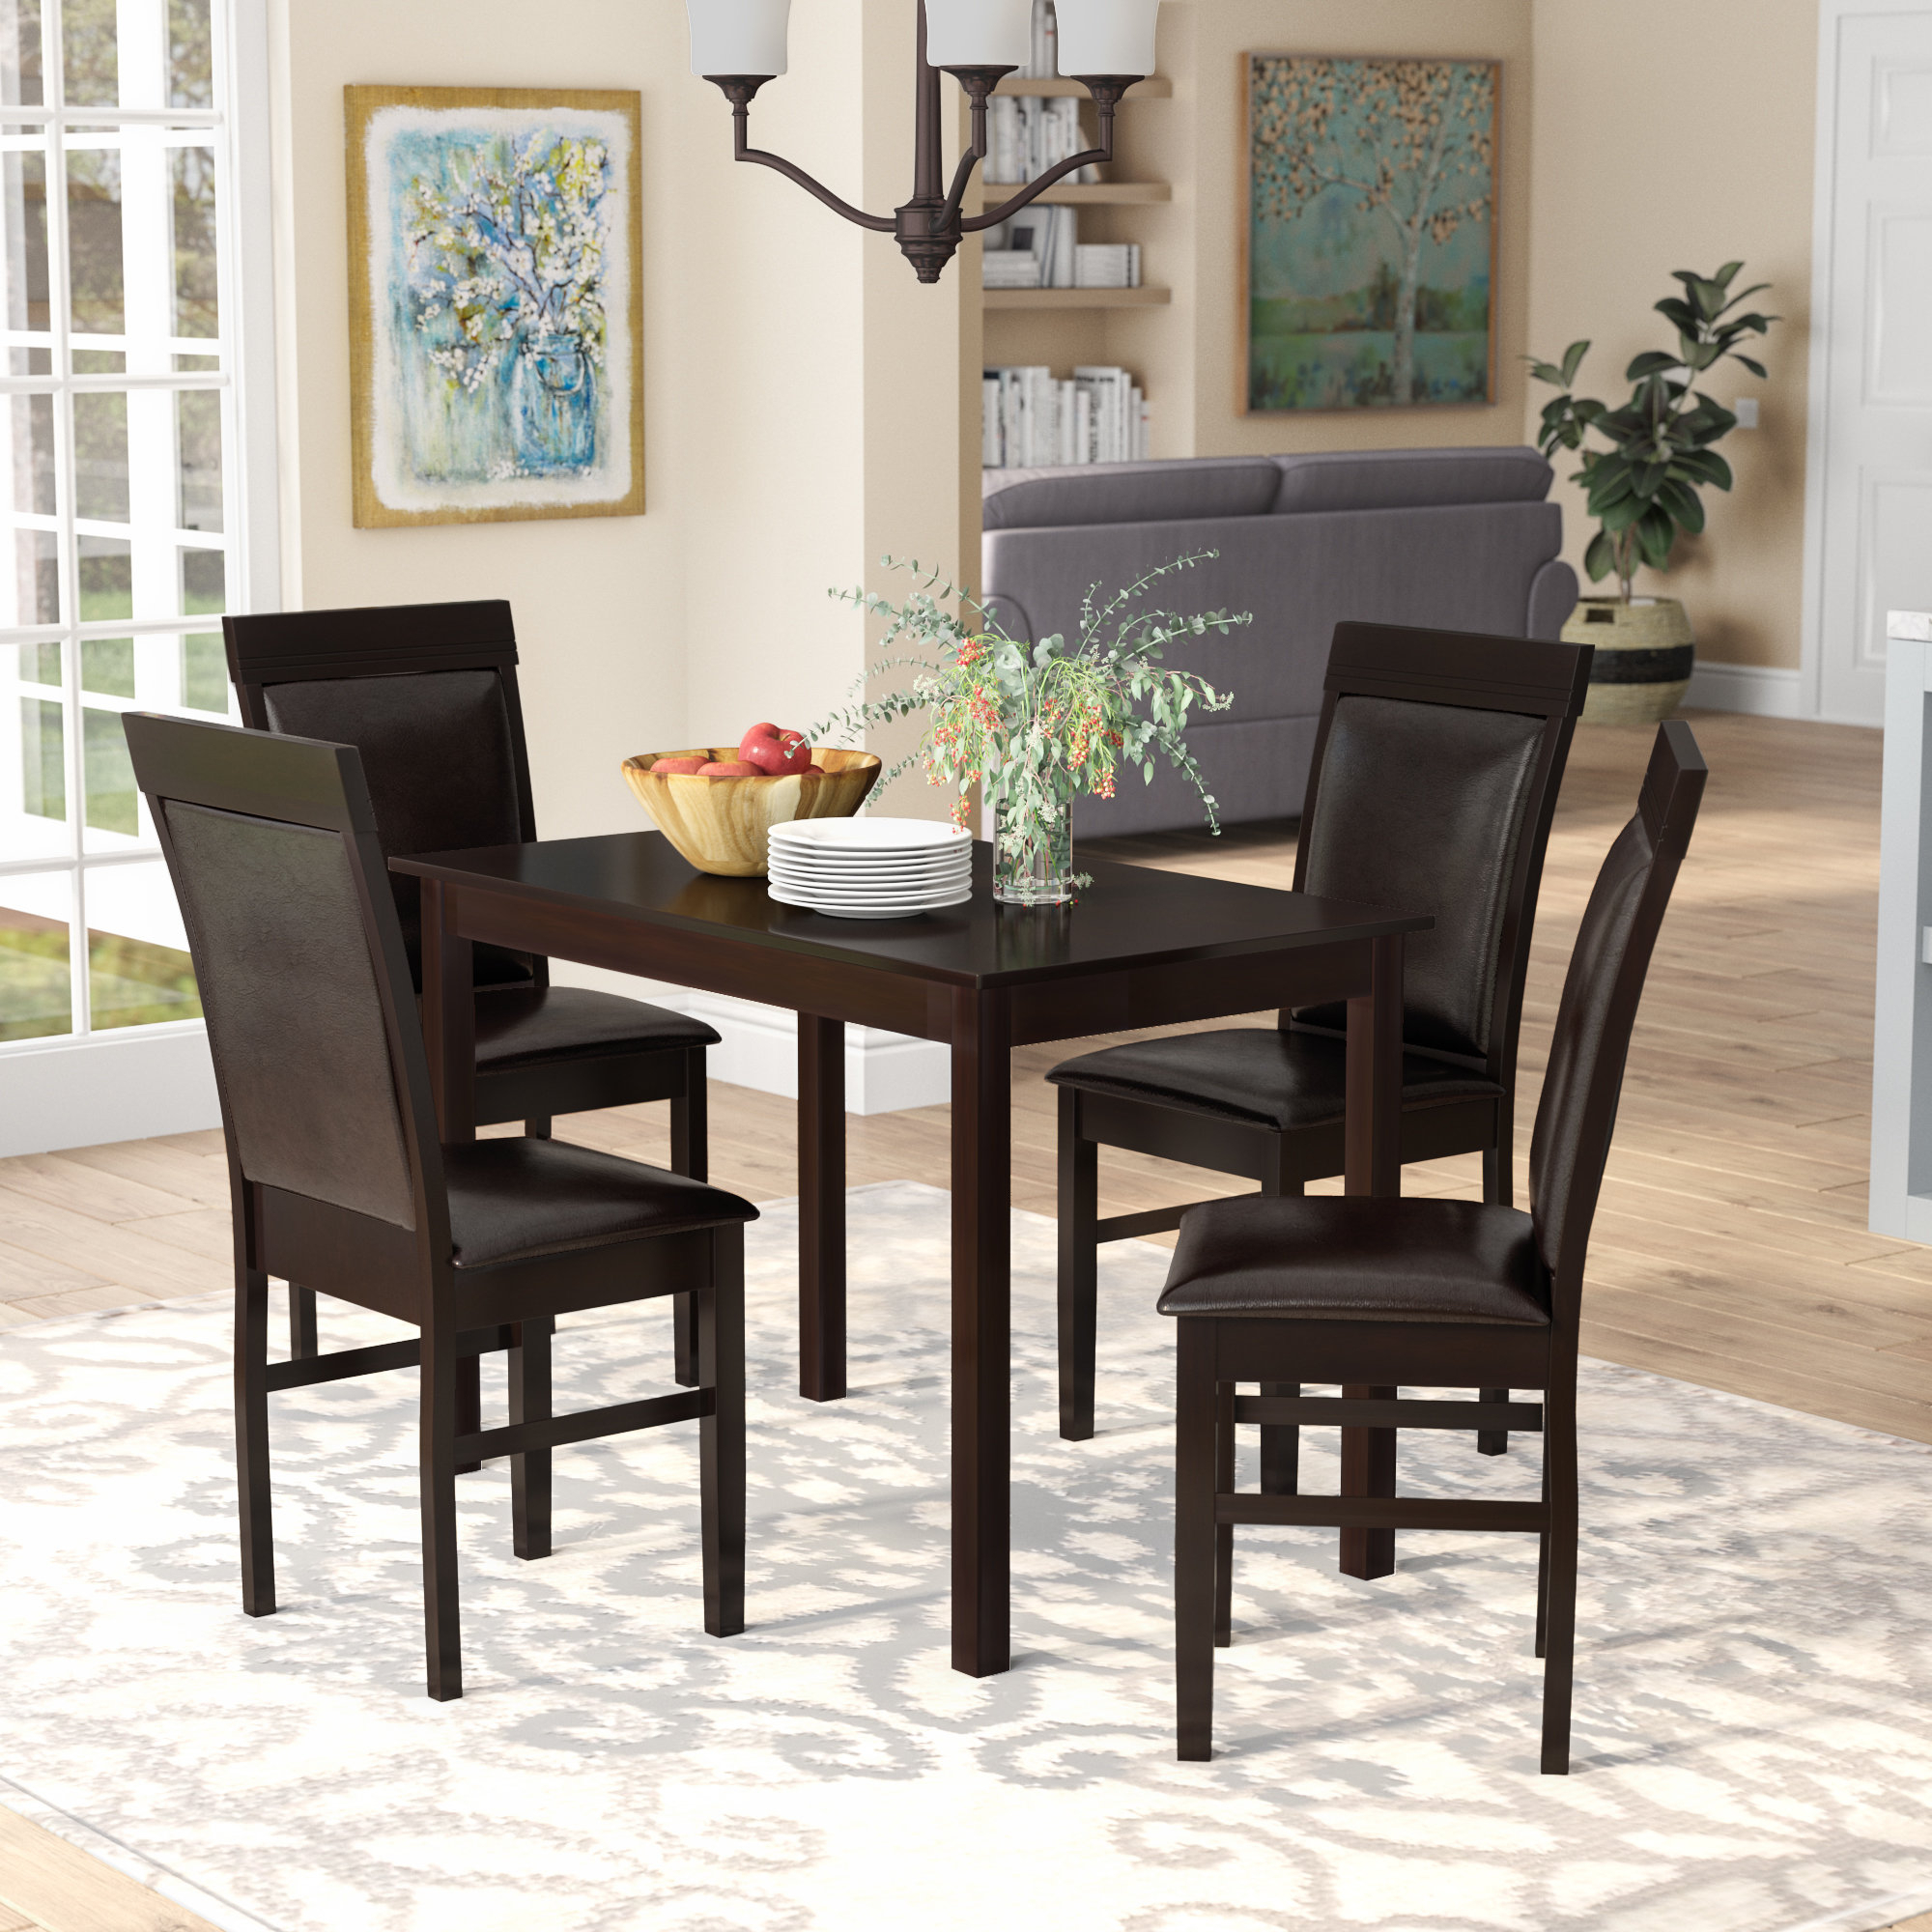 Favorite 5 Piece Breakfast Nook Dining Sets Within Red Barrel Studio Kisor Modern And Contemporary 5 Piece Breakfast (View 2 of 25)